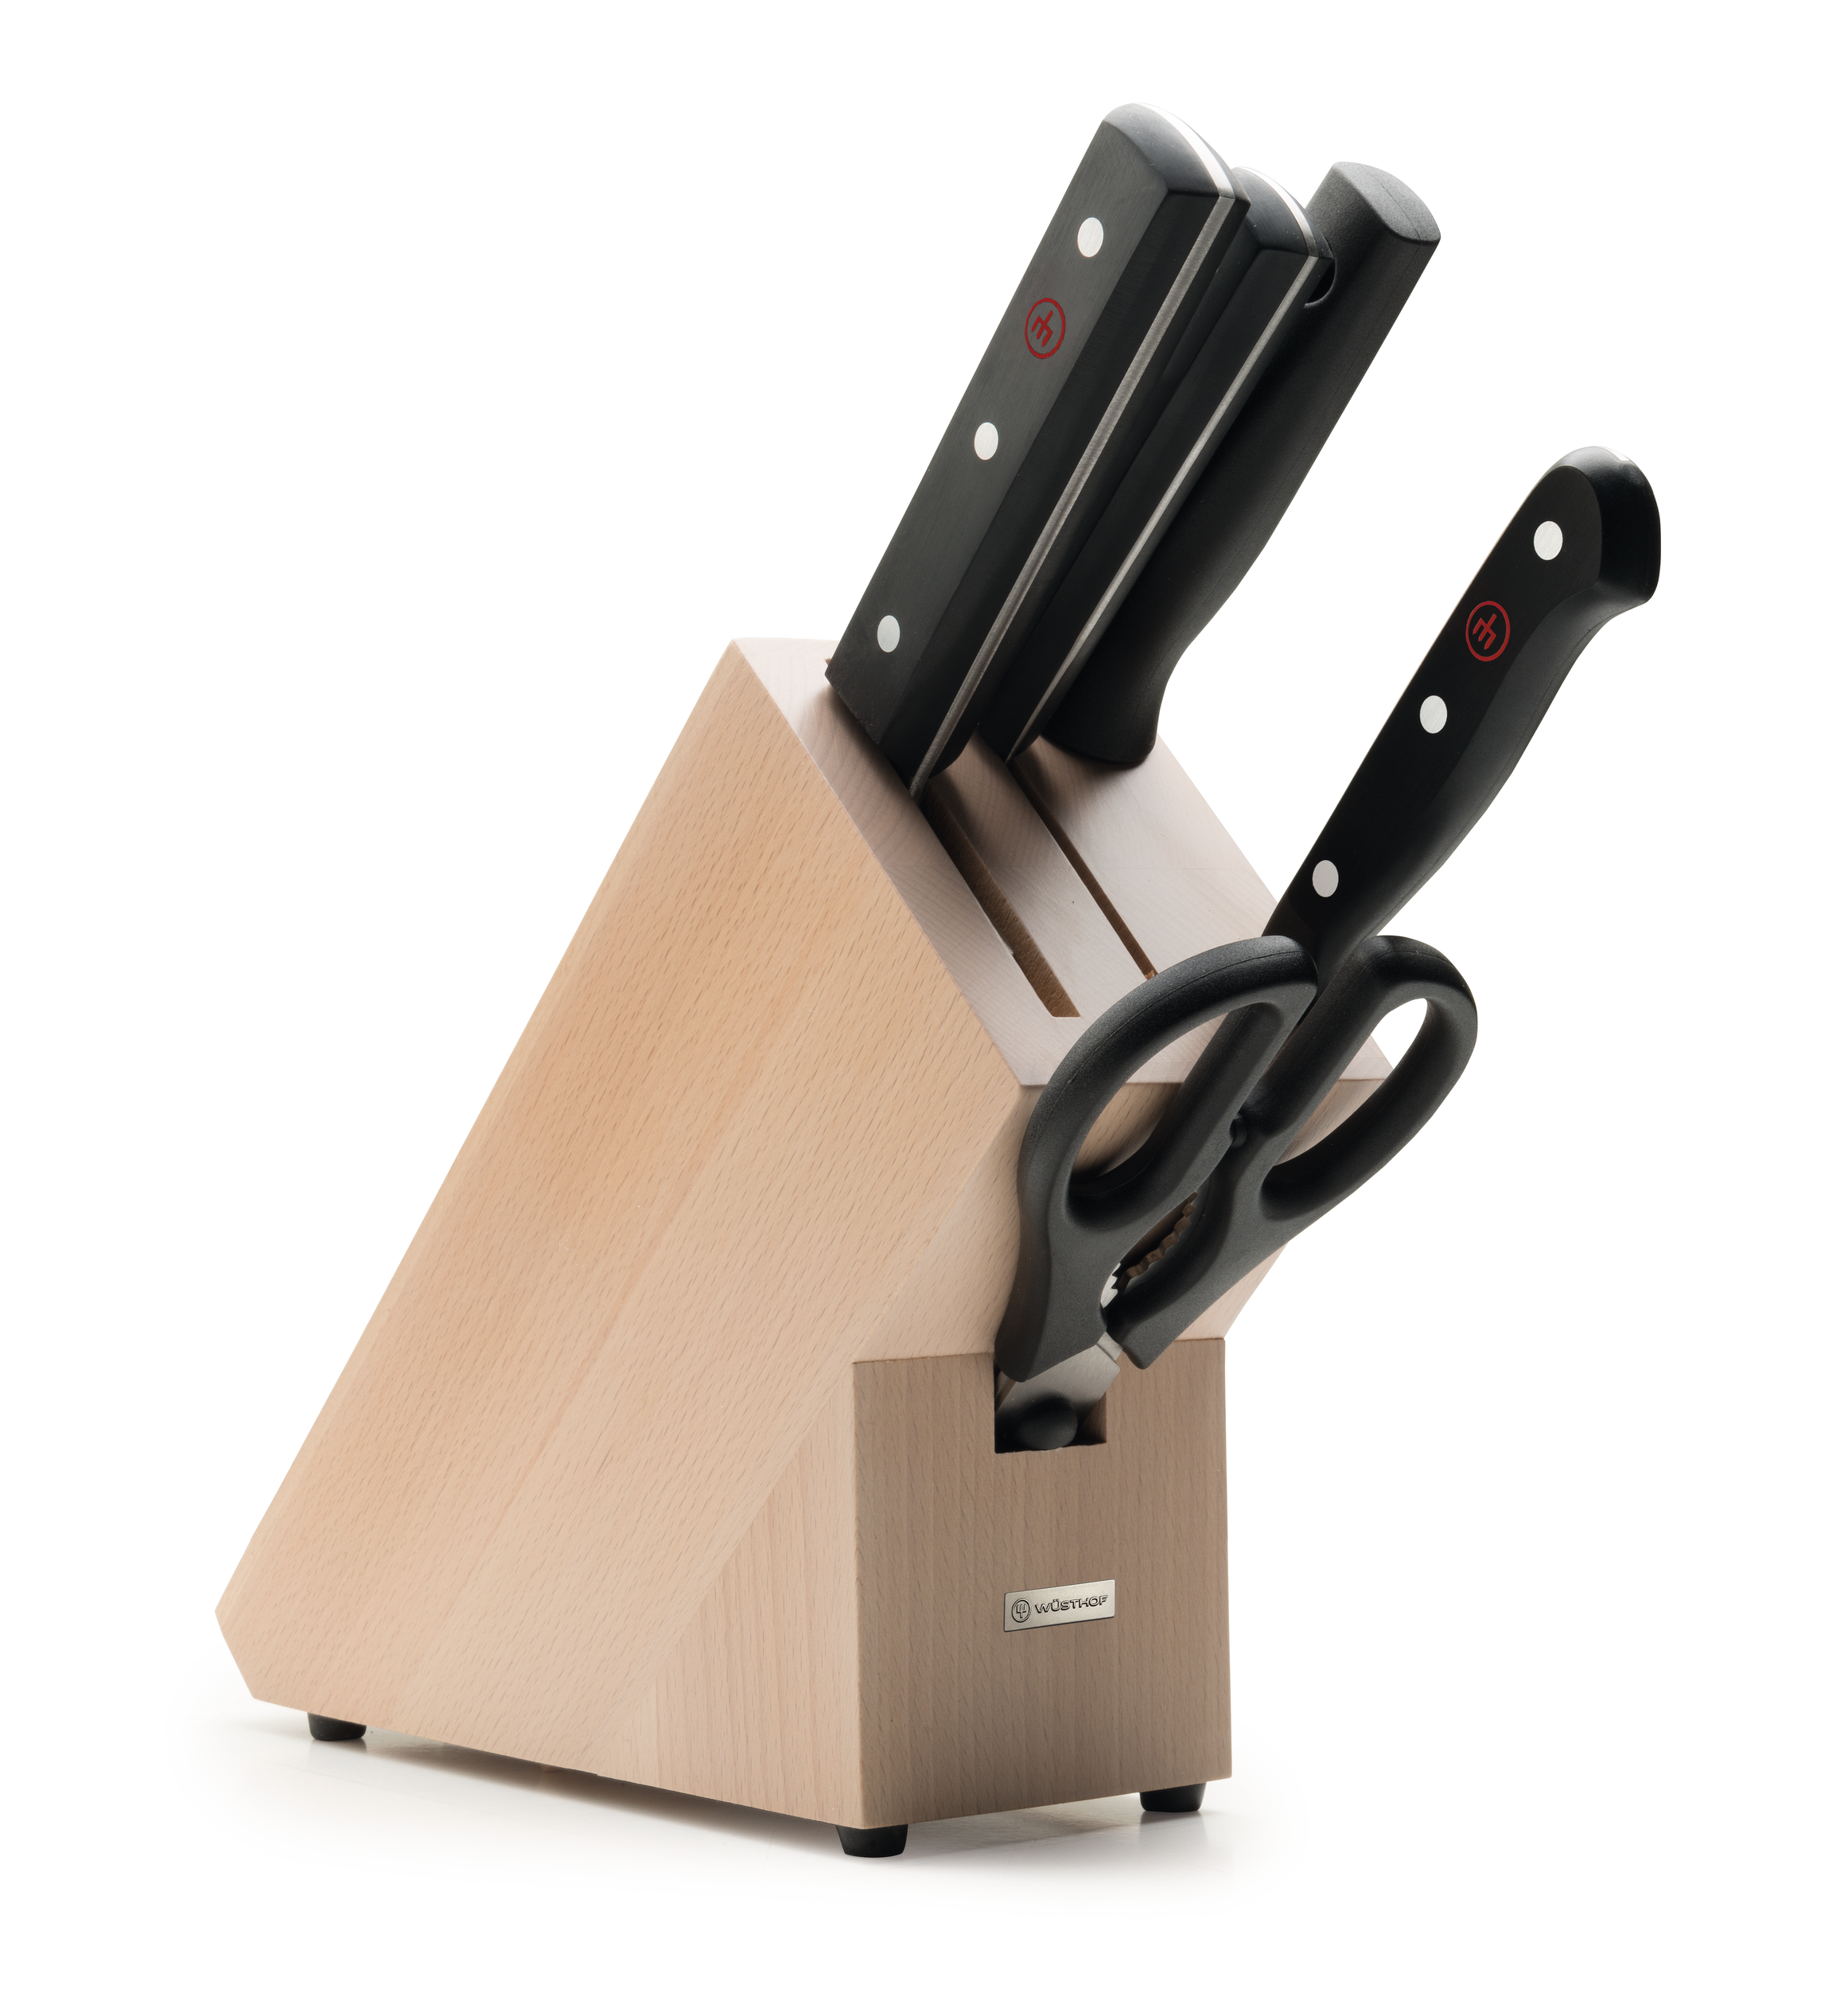 Knife block with 5 pcs.